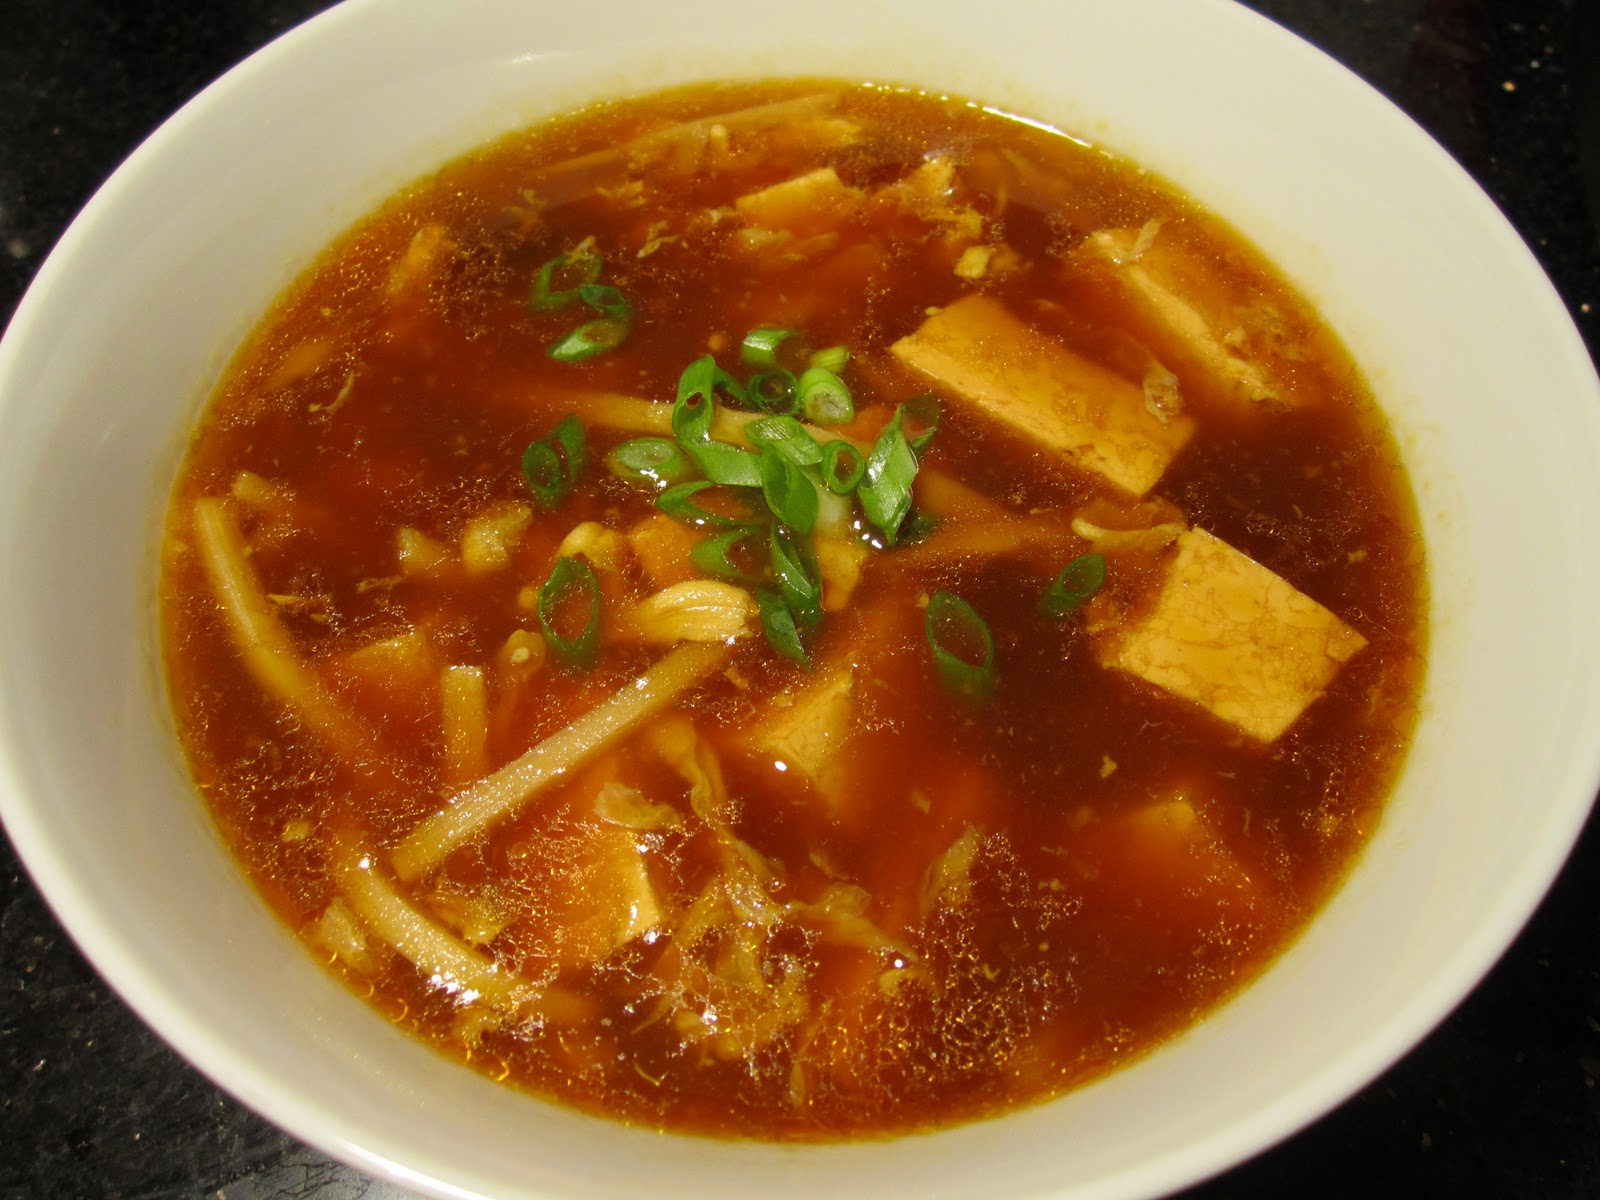 ... hot and sour soup cantonese style hot and sour soup hot and sour